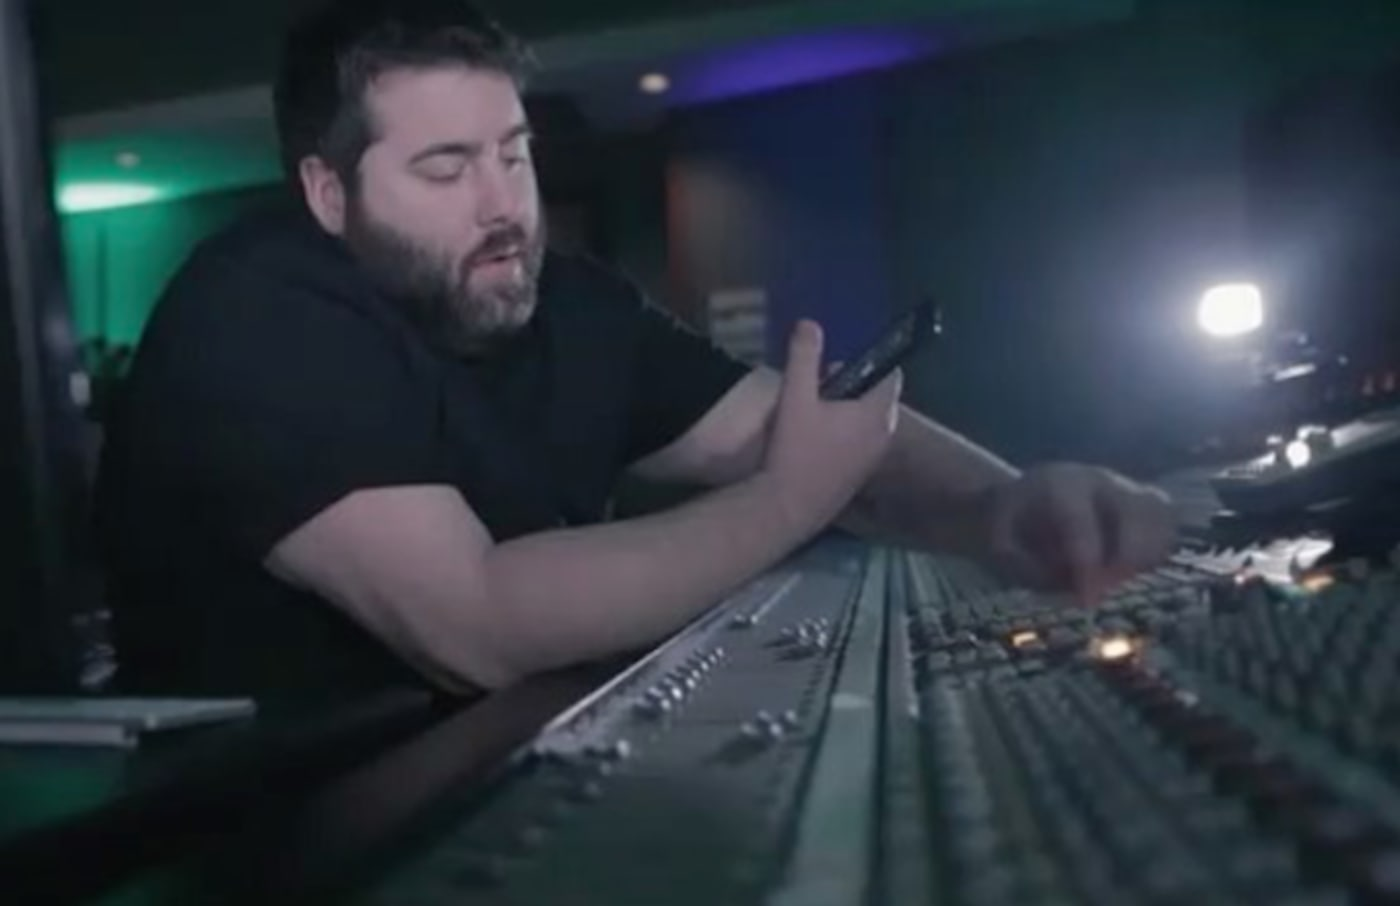 Screenshot of Seth Firkins from video posted by Zoey Dollaz.